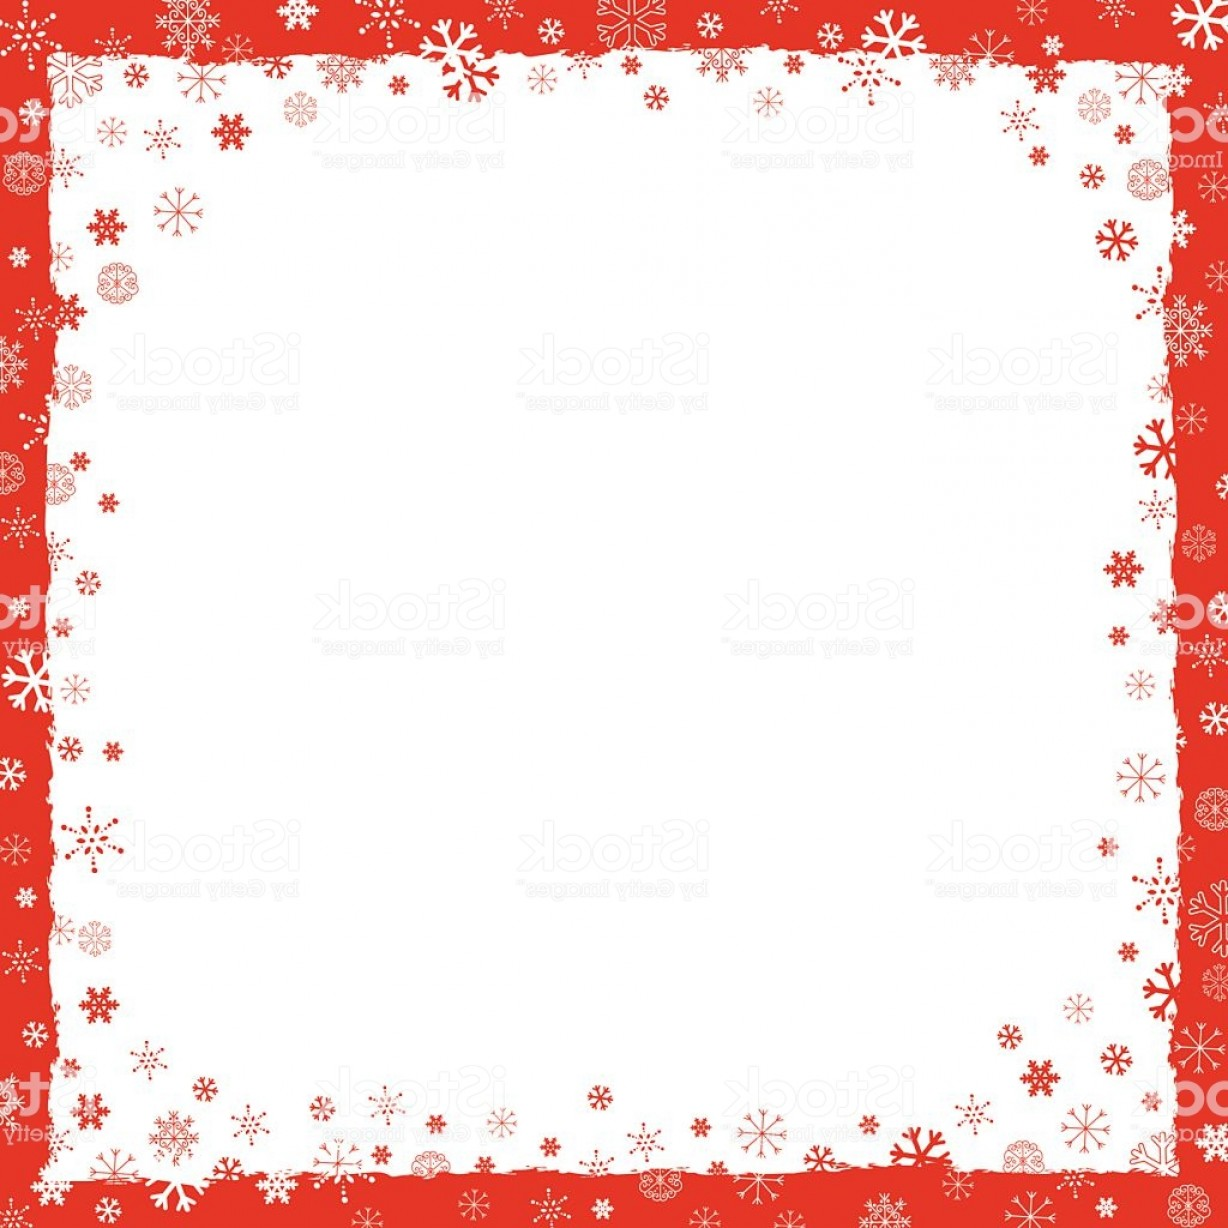 Snowflake Border Vector Art: New Year Background With Snowflakes Border Gm